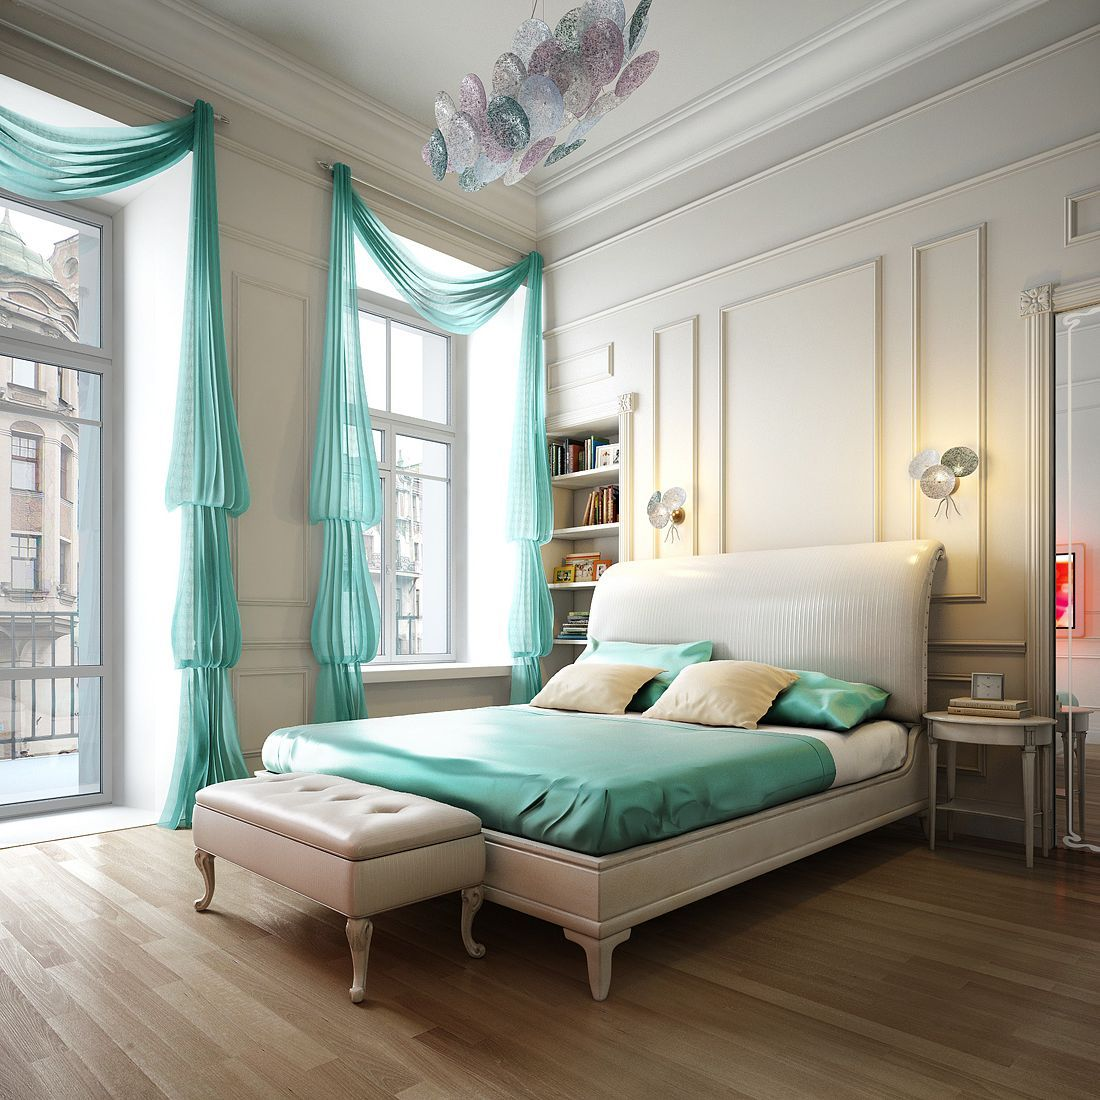 Bed under window ideas  best window treatments for your personal style needs  bedroom